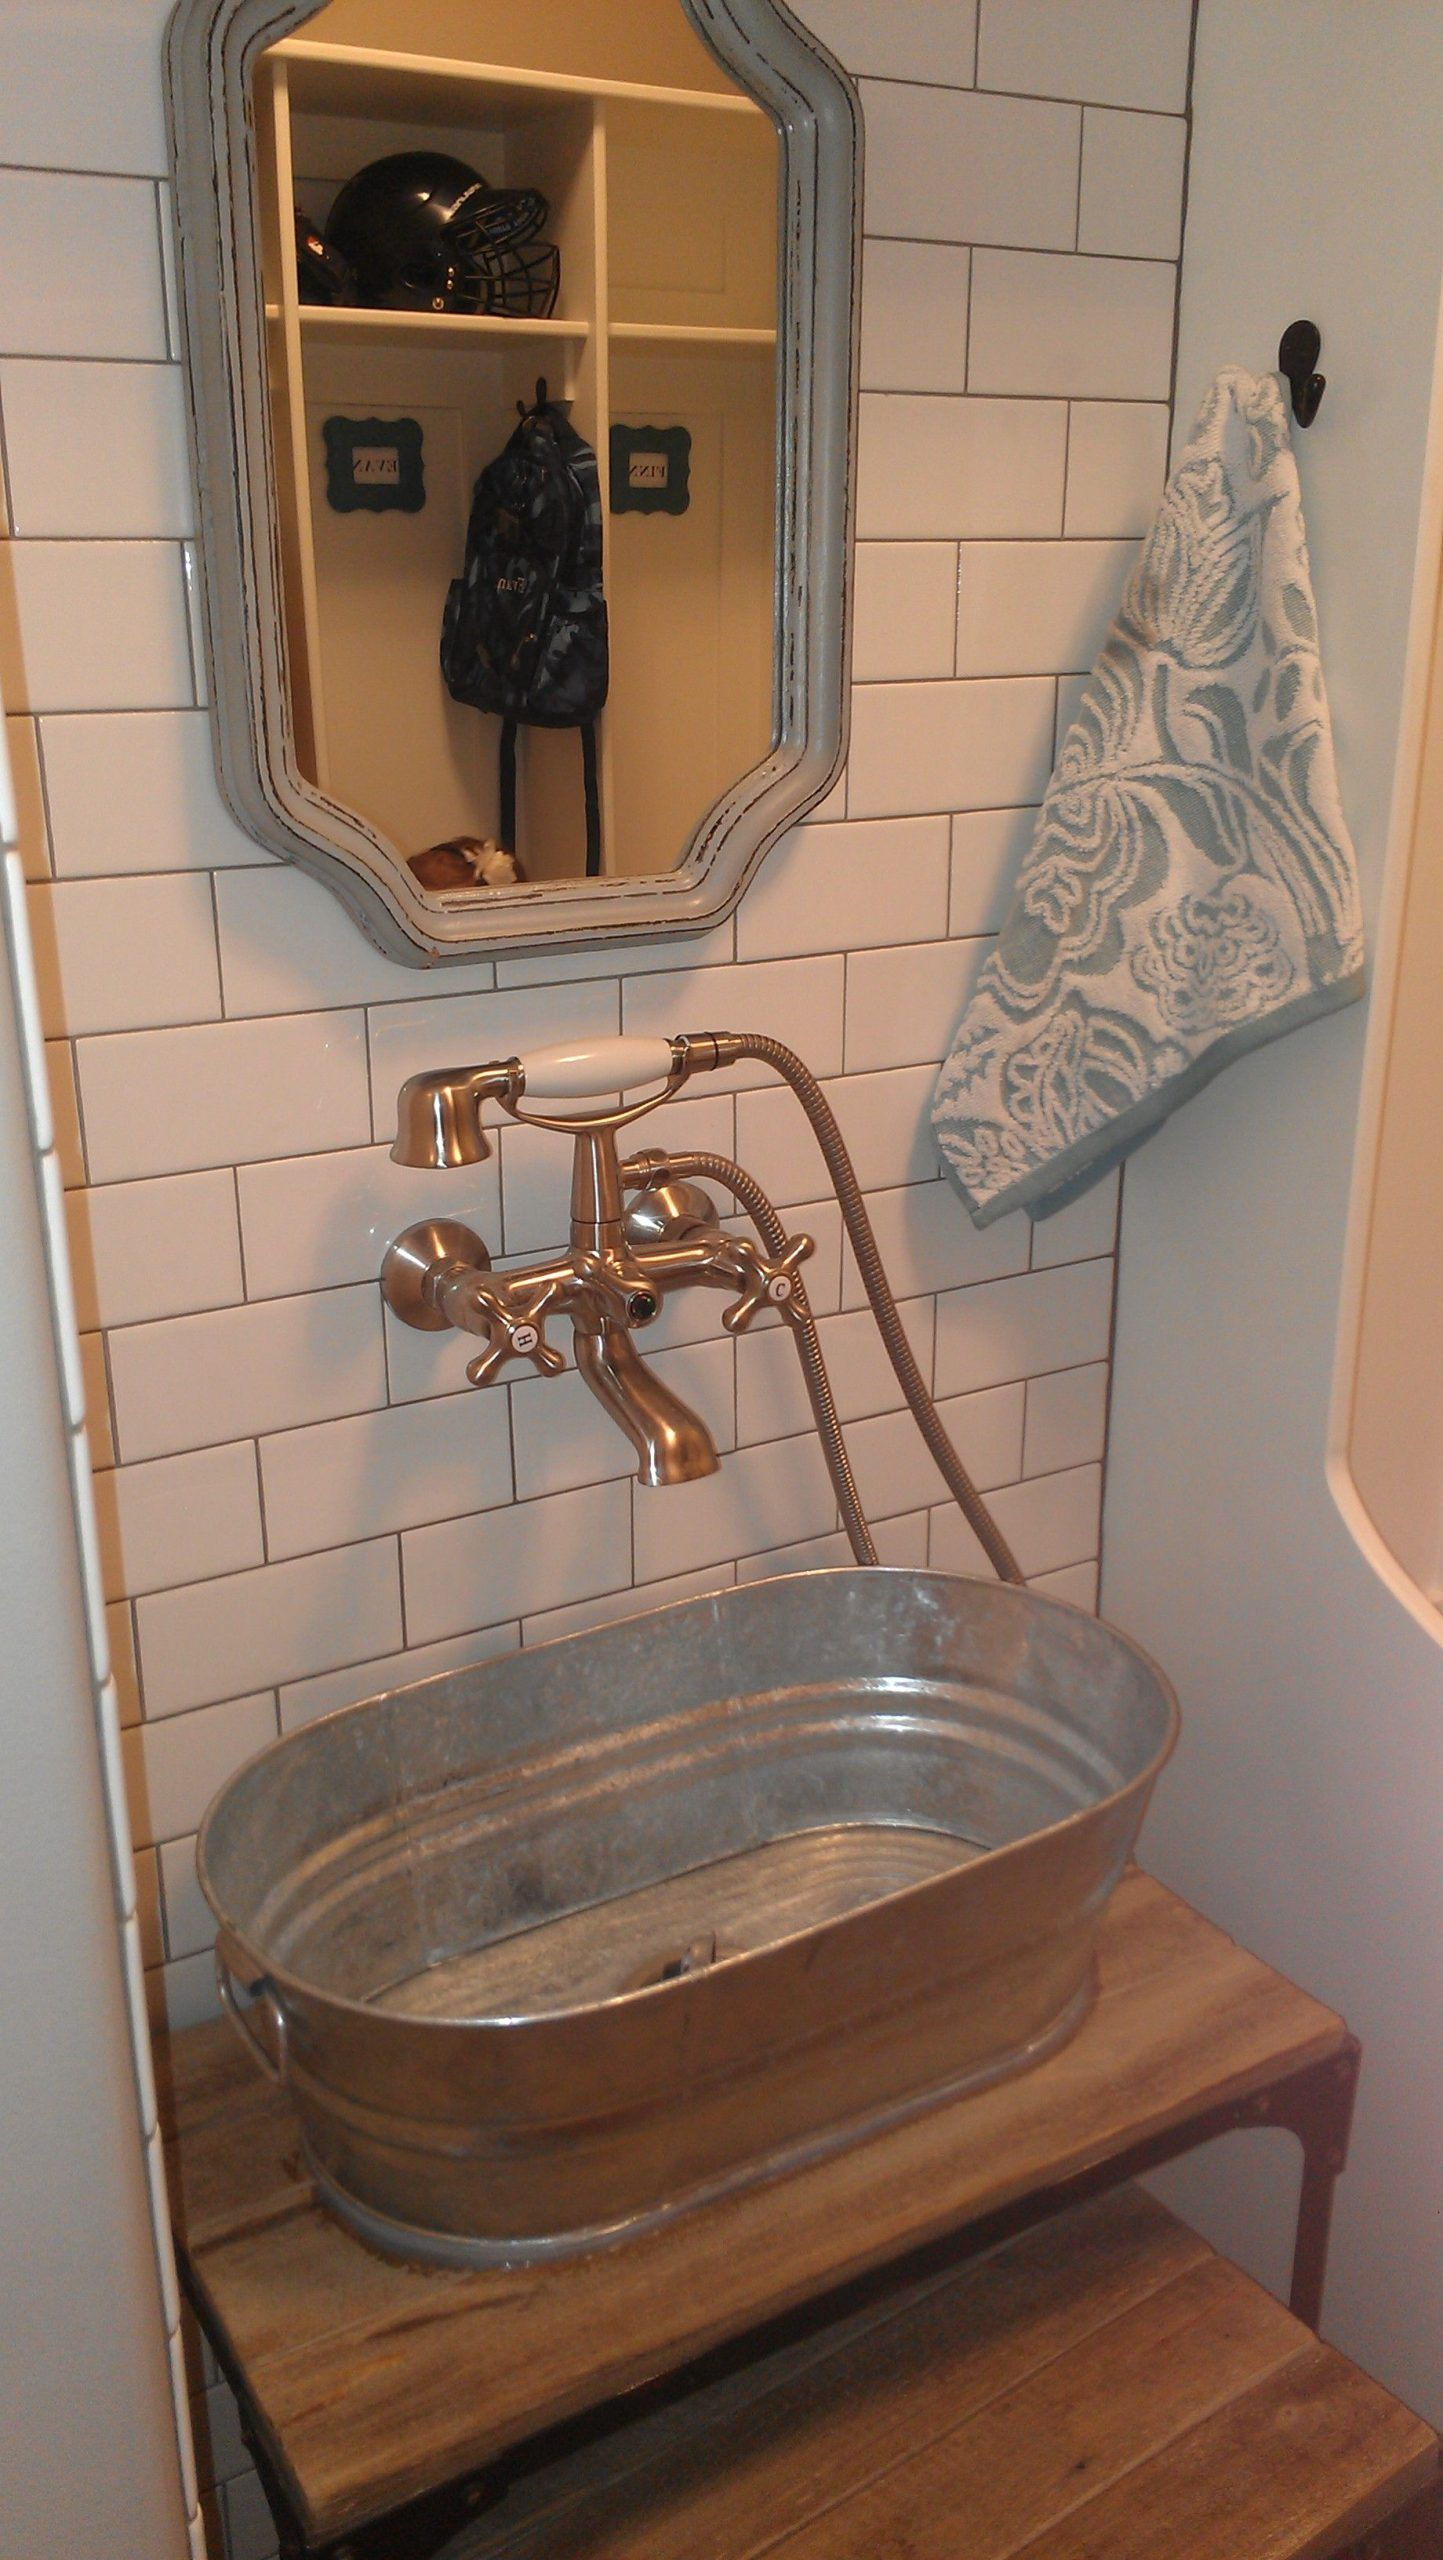 Diy Old Dry Sink With A Galvanized Washtub As The Sink And Well Pump Style Faucet Wash Tub Sink Diy Sink Vanity Primitive Bathrooms